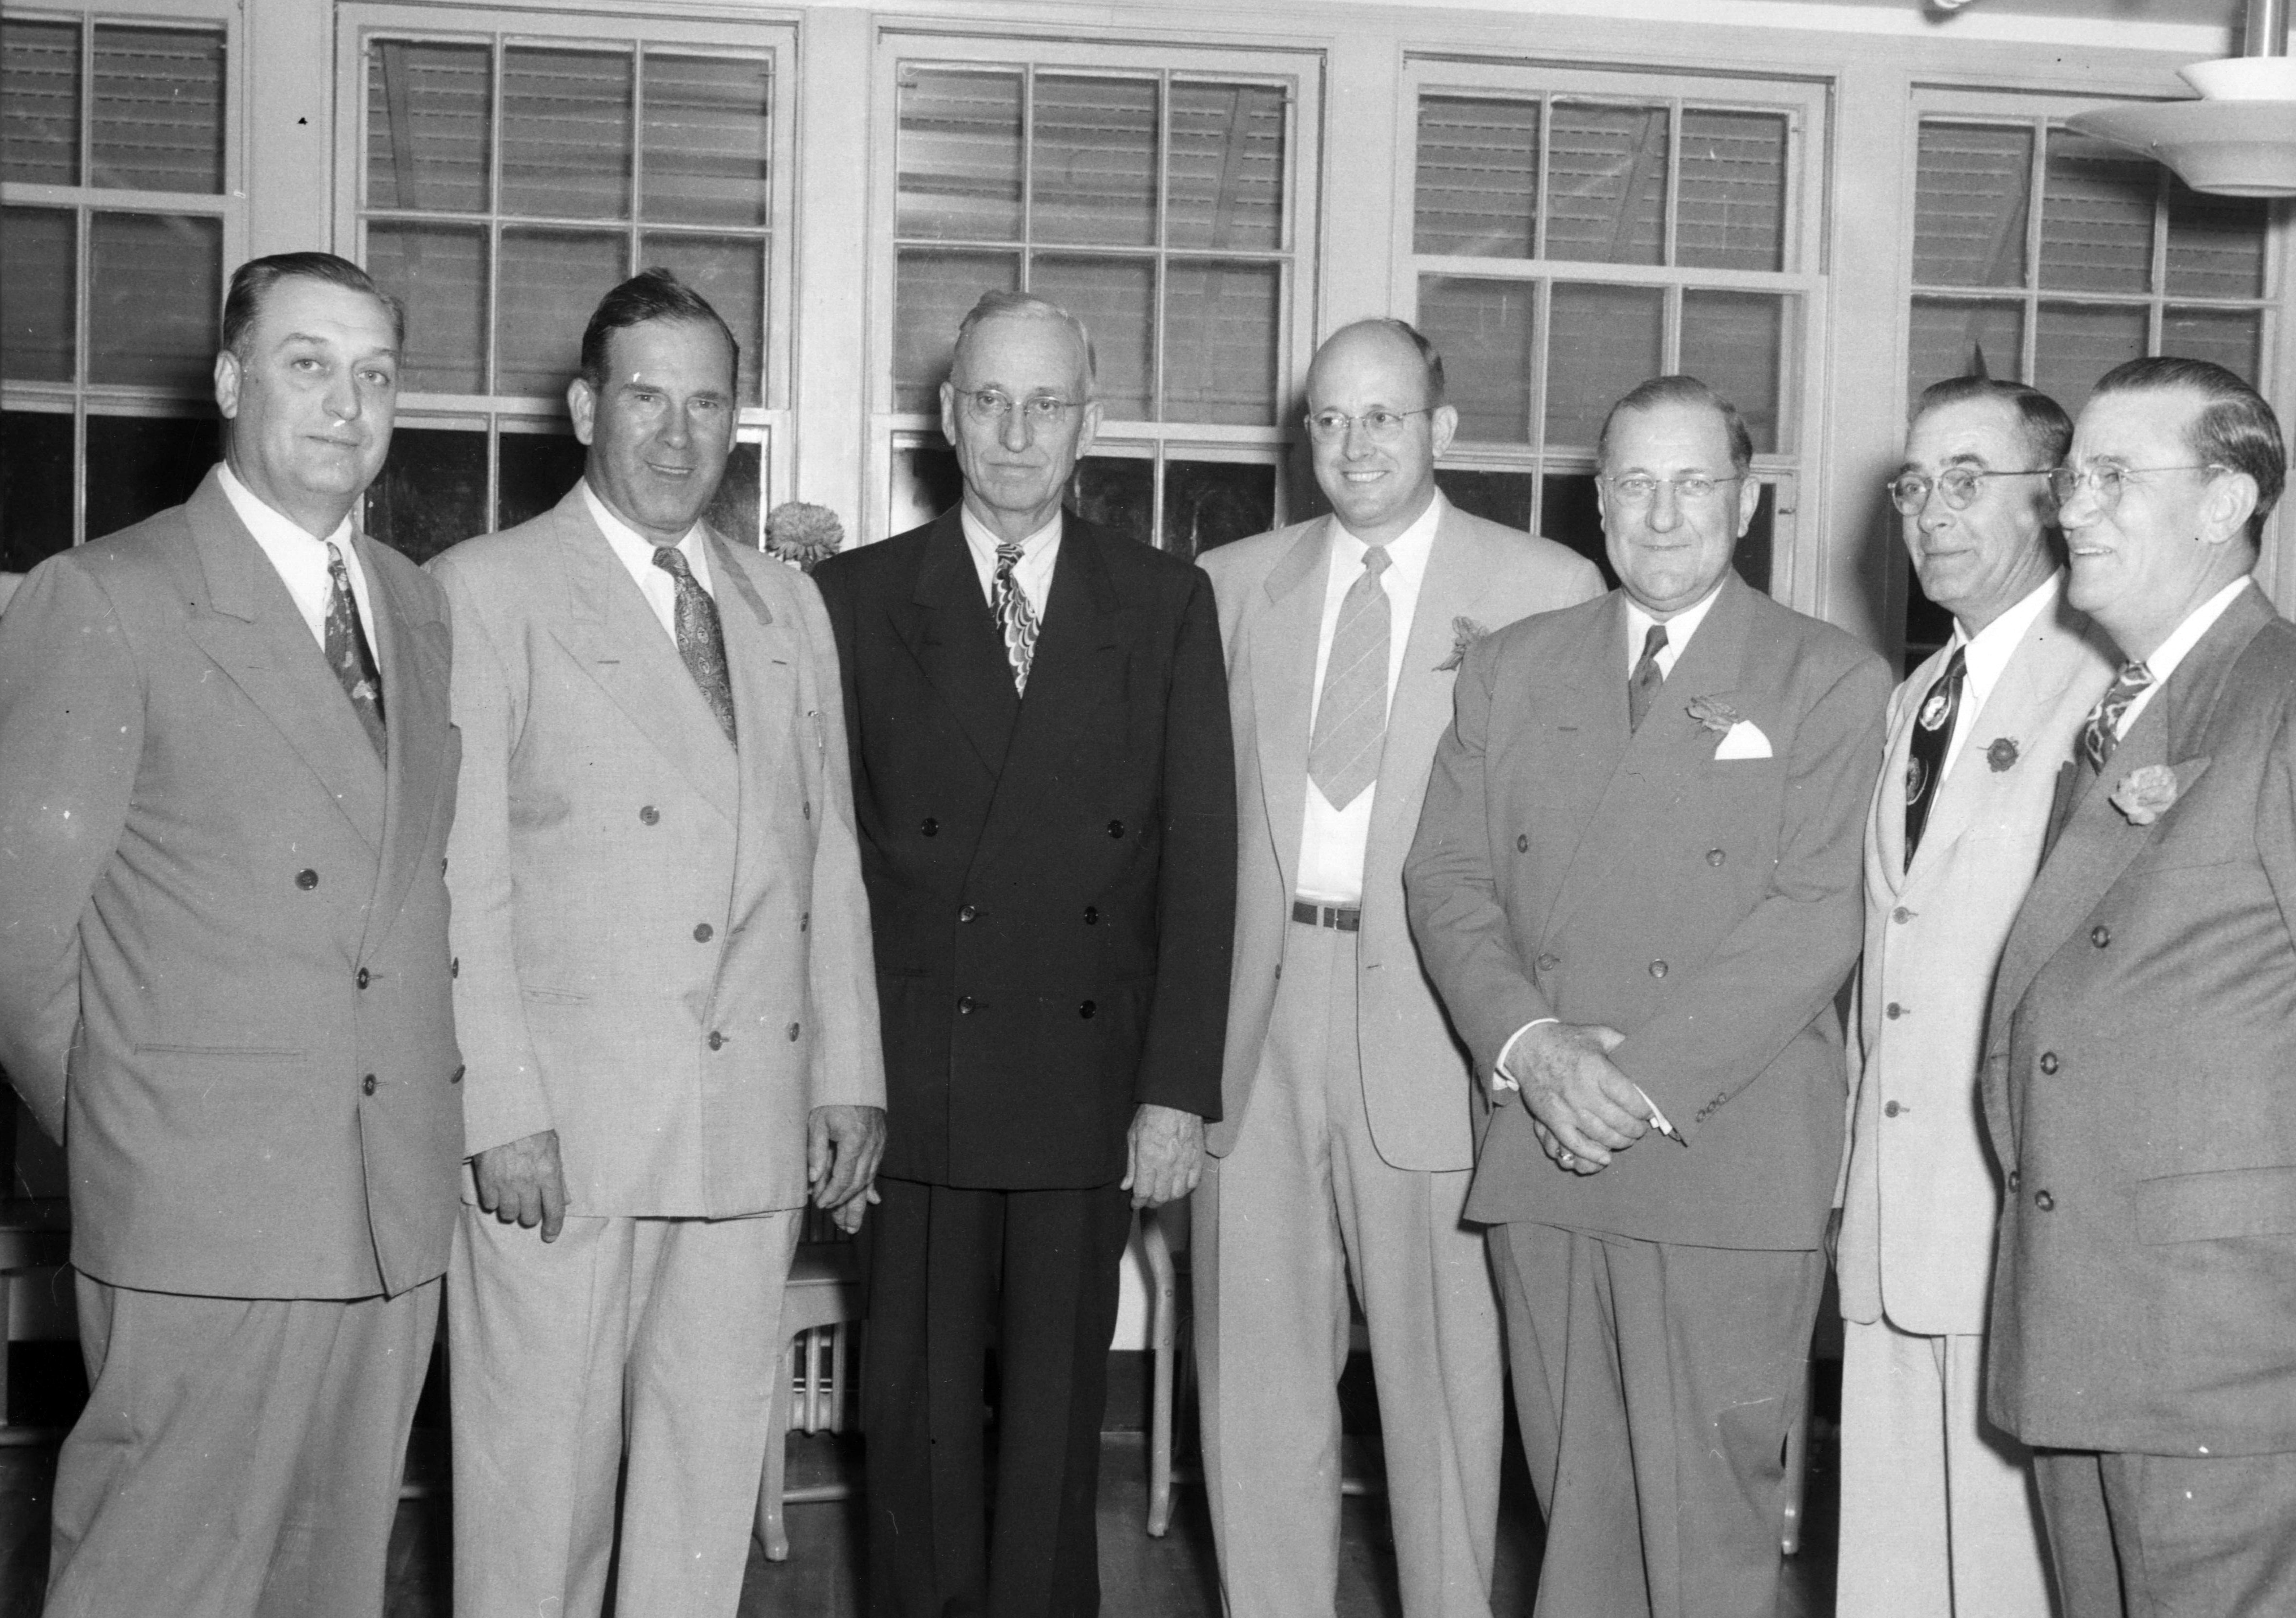 A vintage image of CoxHealth leaders including Lester E. Cox.